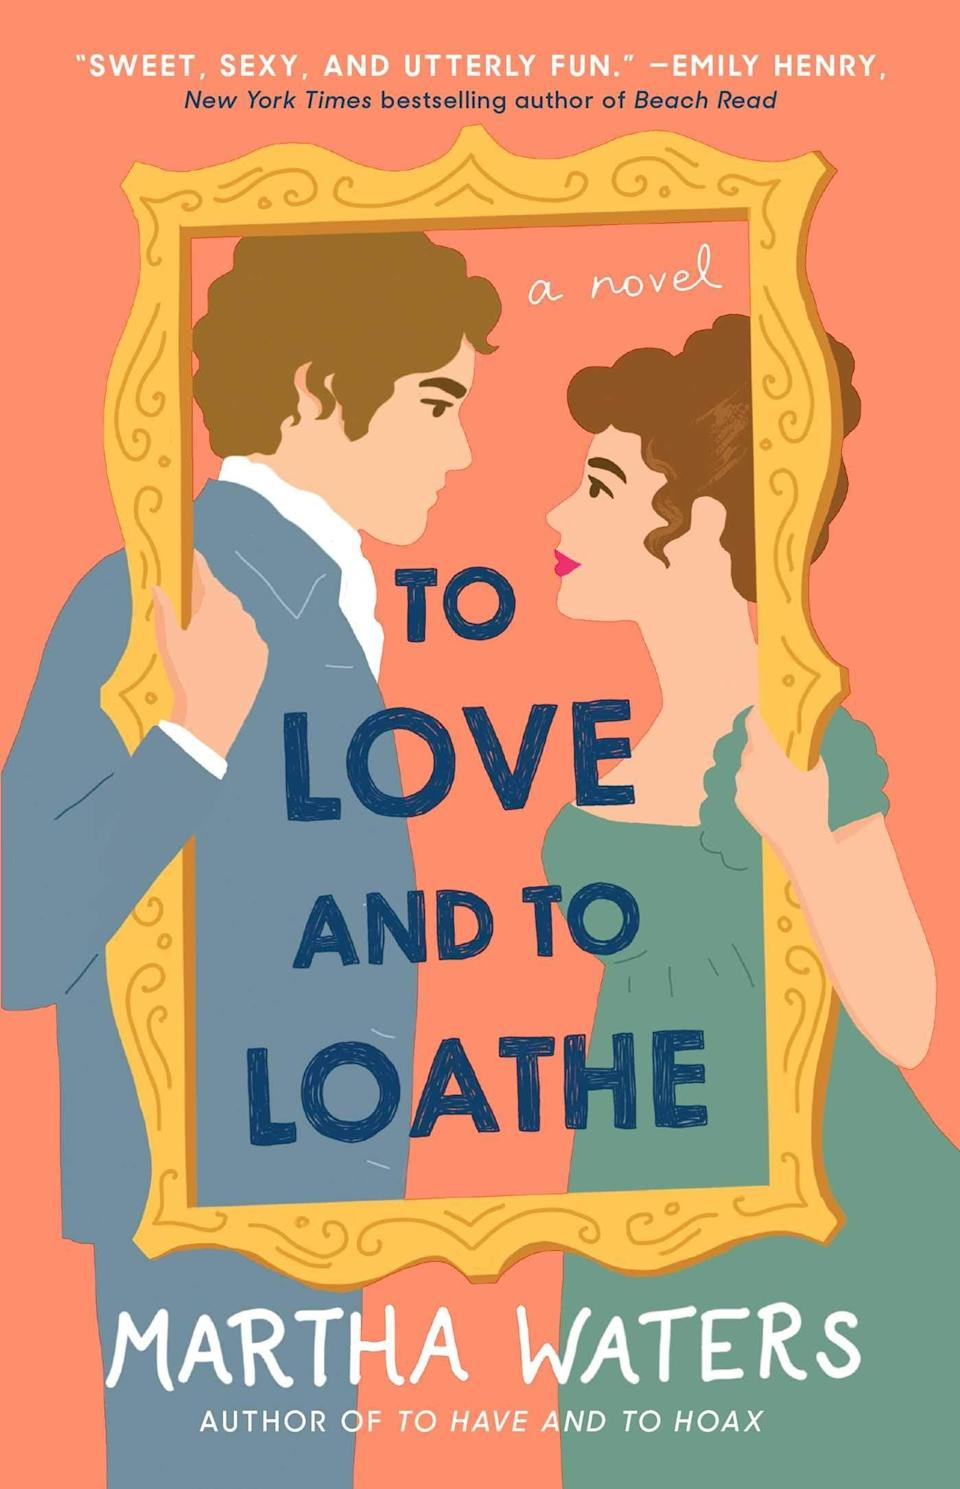 <p><span><strong>To Love and to Loathe</strong></span> is the second novel in Martha Waters's <strong>The Regency Vows</strong> series. This time around, the spotlight is on the electric chemistry between the widowed Diana, Lady Templeton and perpetual bachelor Jeremy, Marquess of Willingham as the two strike a wager that will almost certainly force them to confront their feelings for one another. </p> <p><em>Out April 6</em></p>